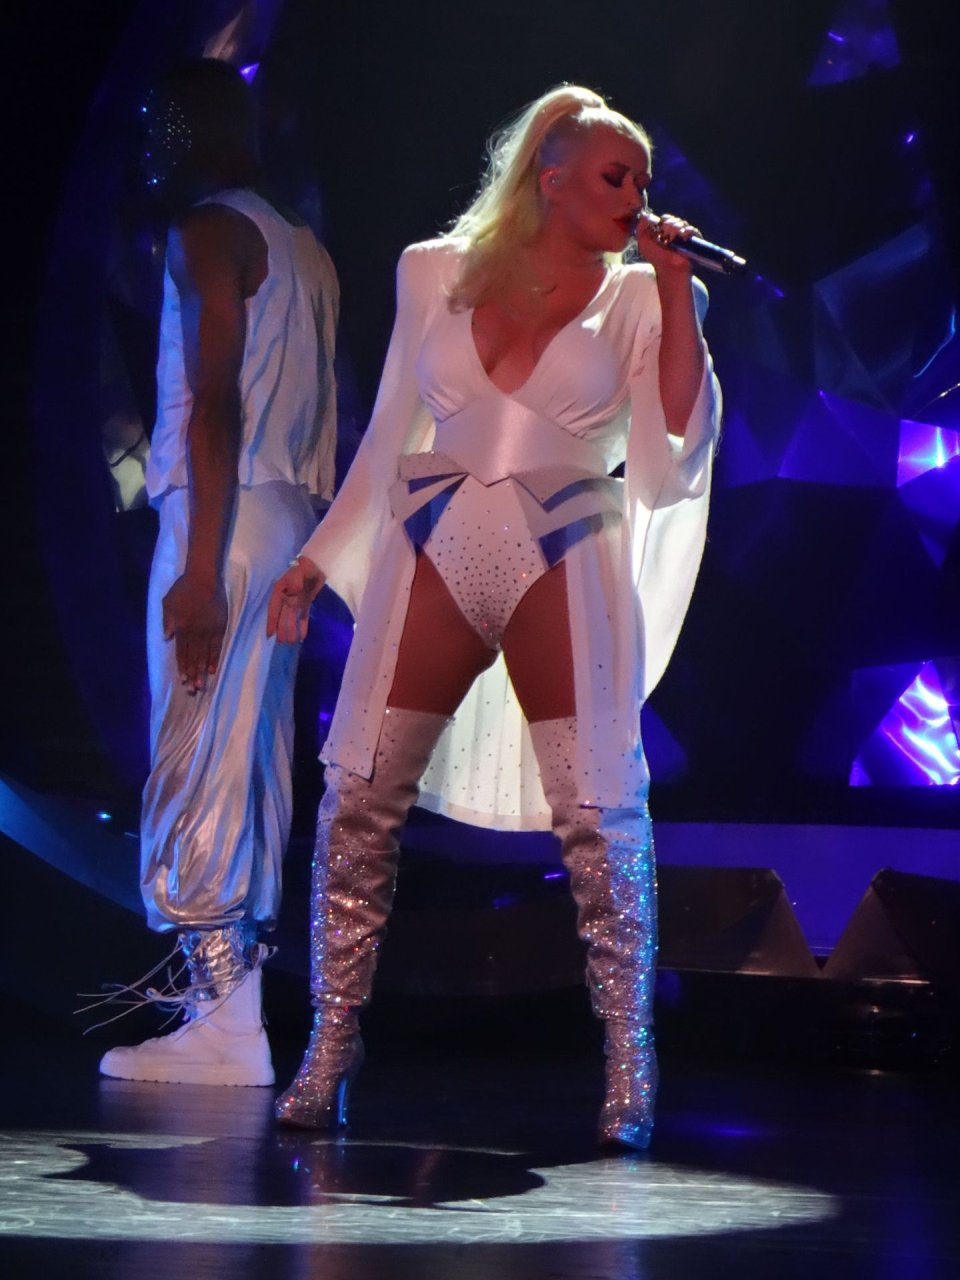 Christina Aguilera suffers a wardrobe malfunction at The Zappos Theater in Las Vegas, 27-9-2019